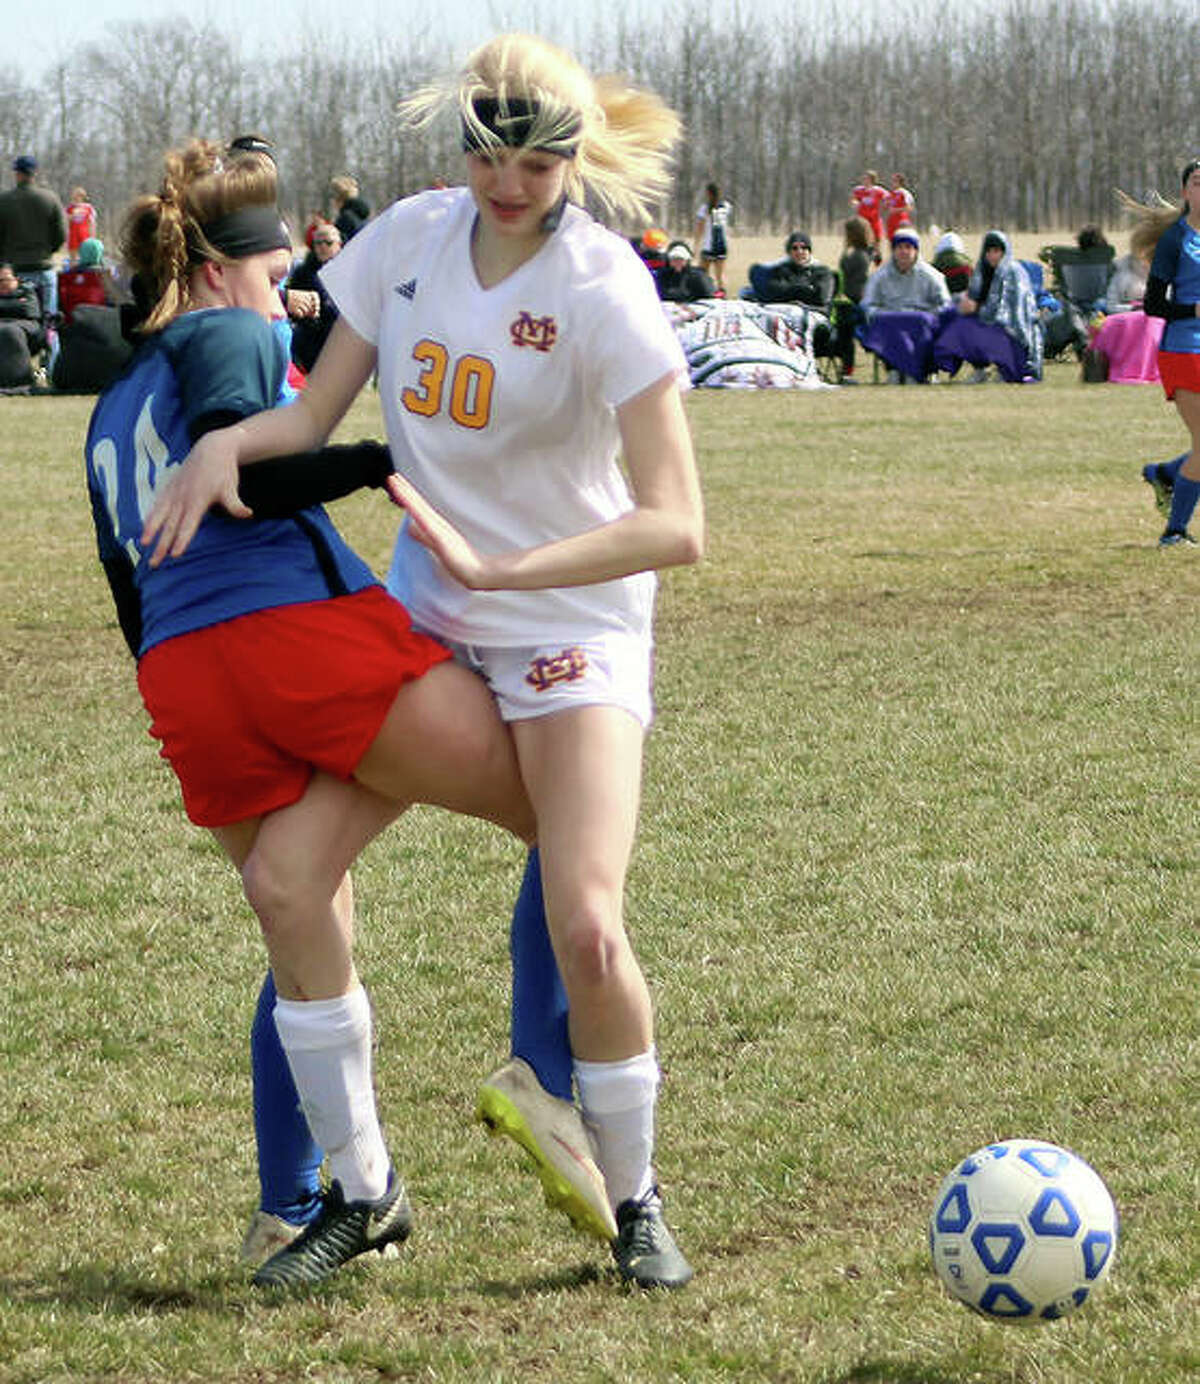 Claire Christeson of Civic Memorial, right, had a pair of assists in her team's 8-2 victory at Highland Wednesday. Christeson is shown in 2019 action against Carlinville.